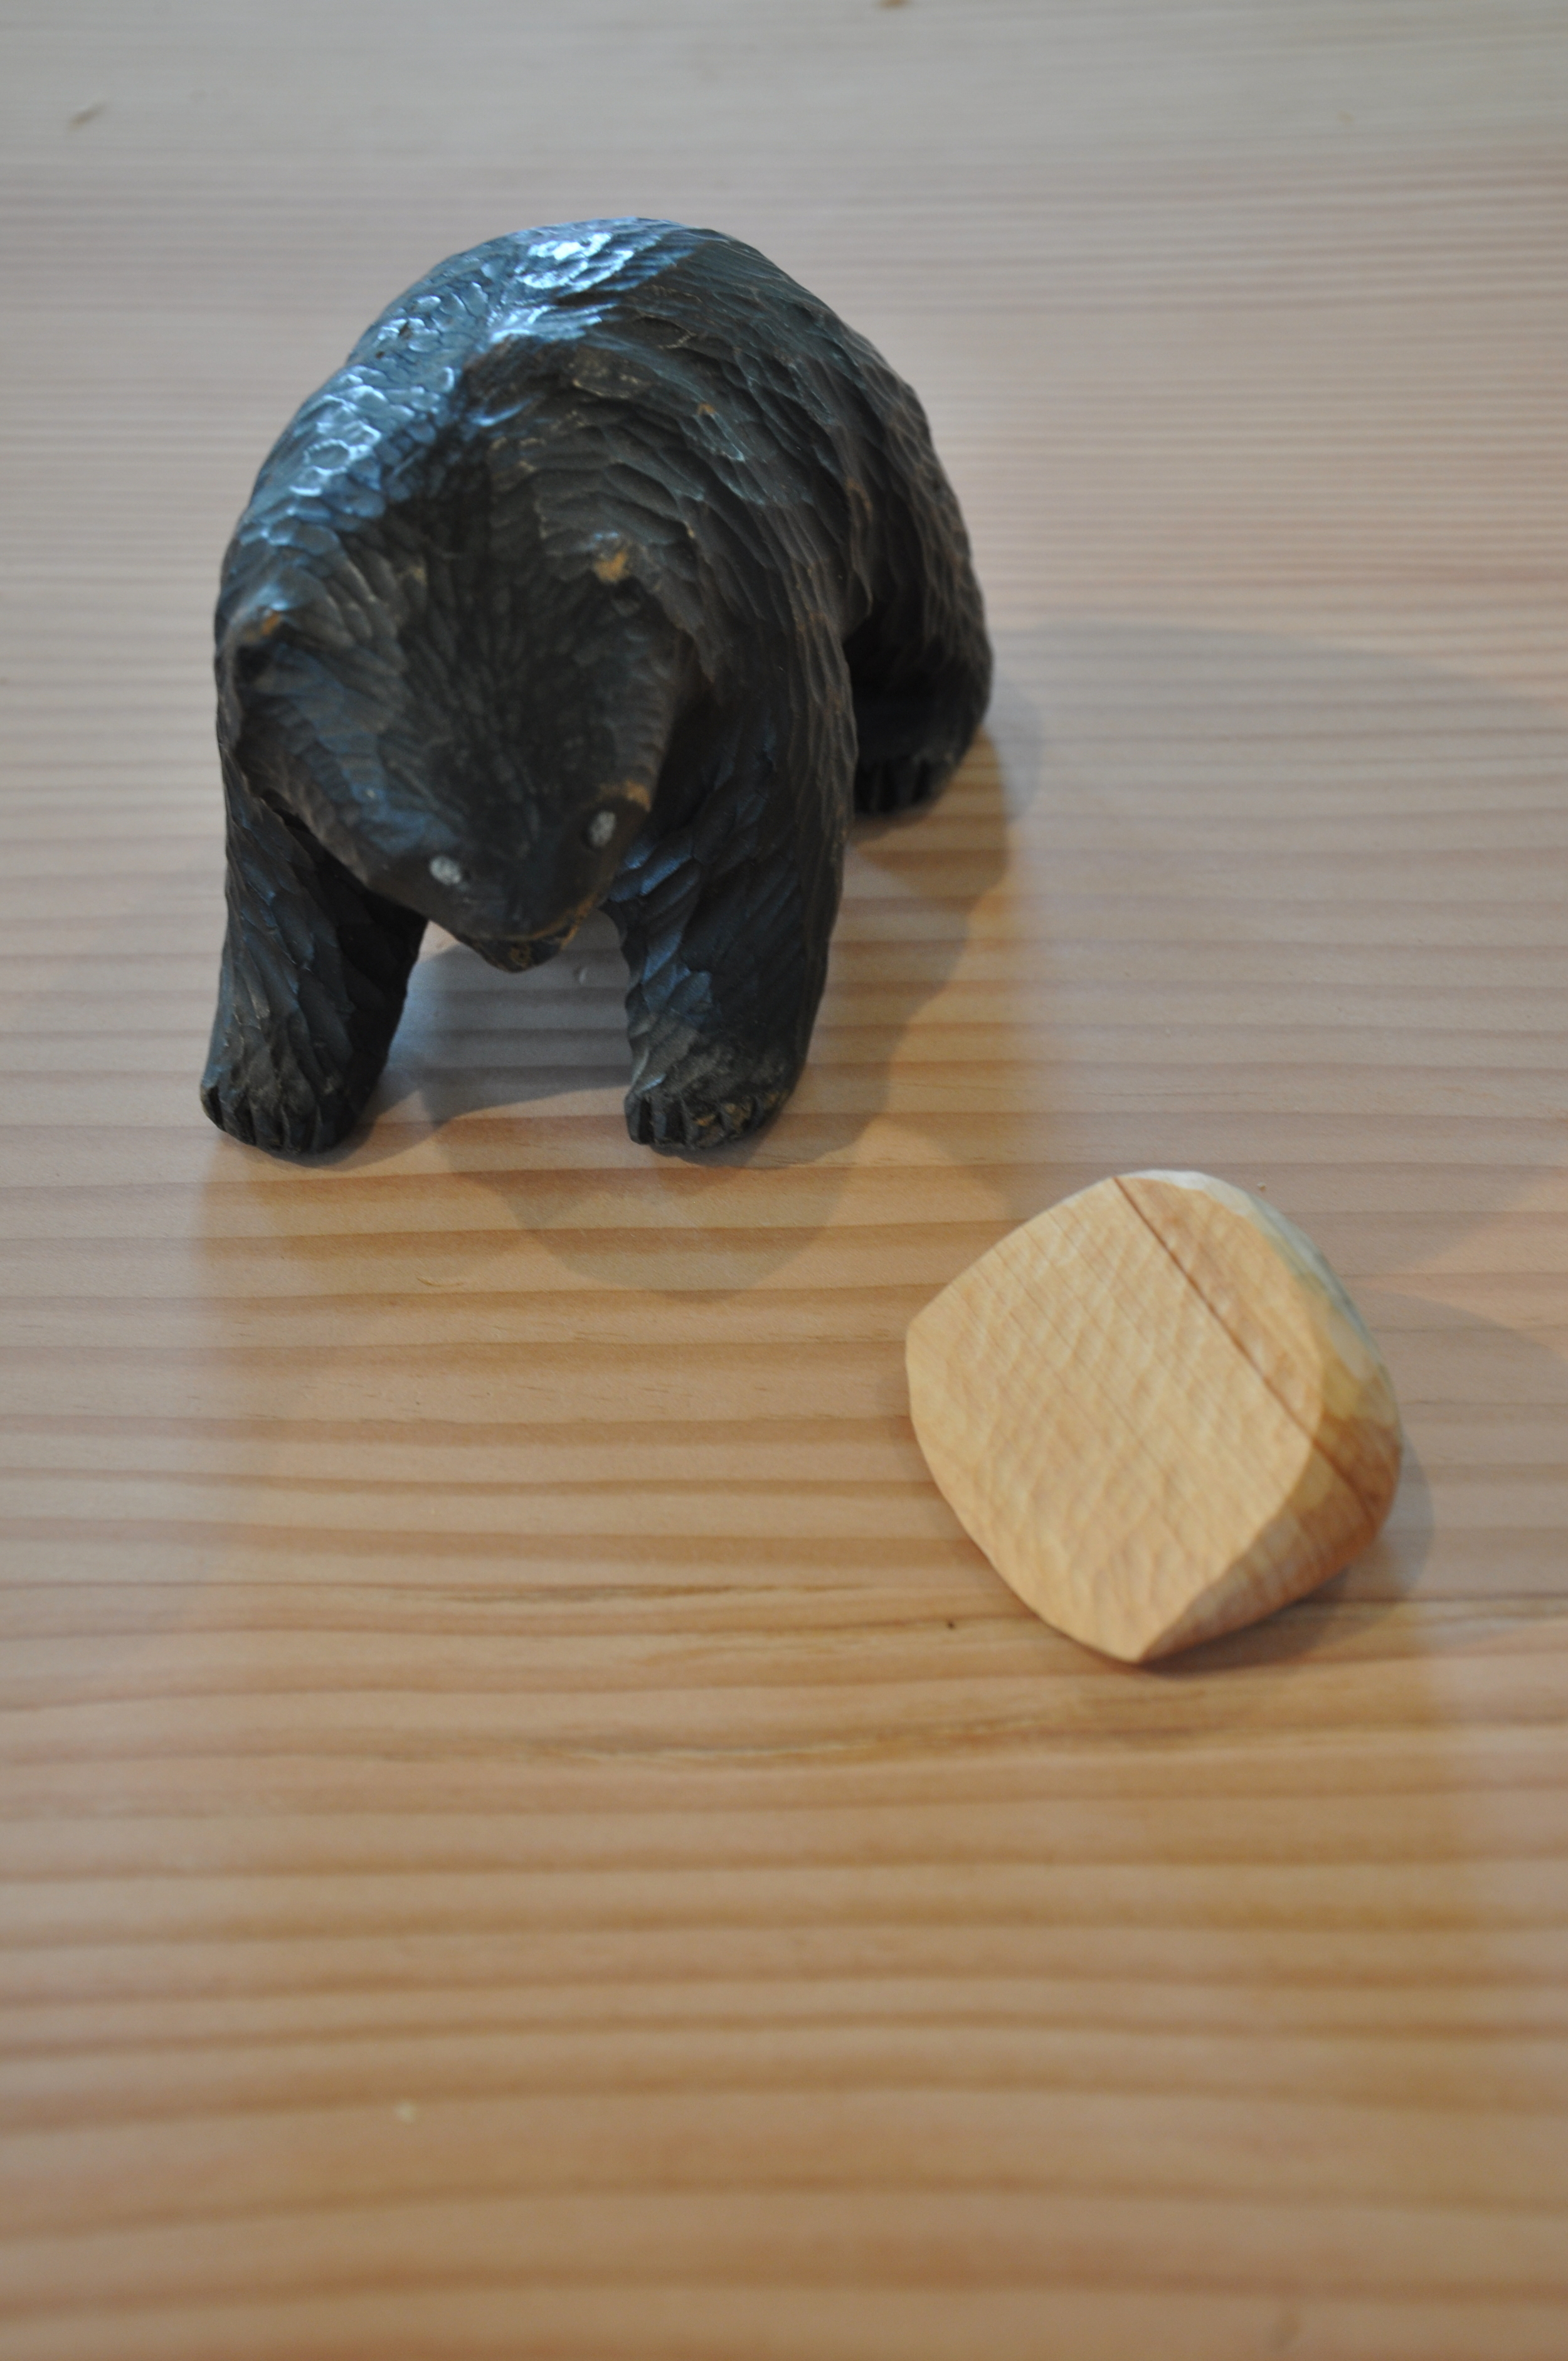 Whittling being evaluated by vintage Ainu bear sculpture